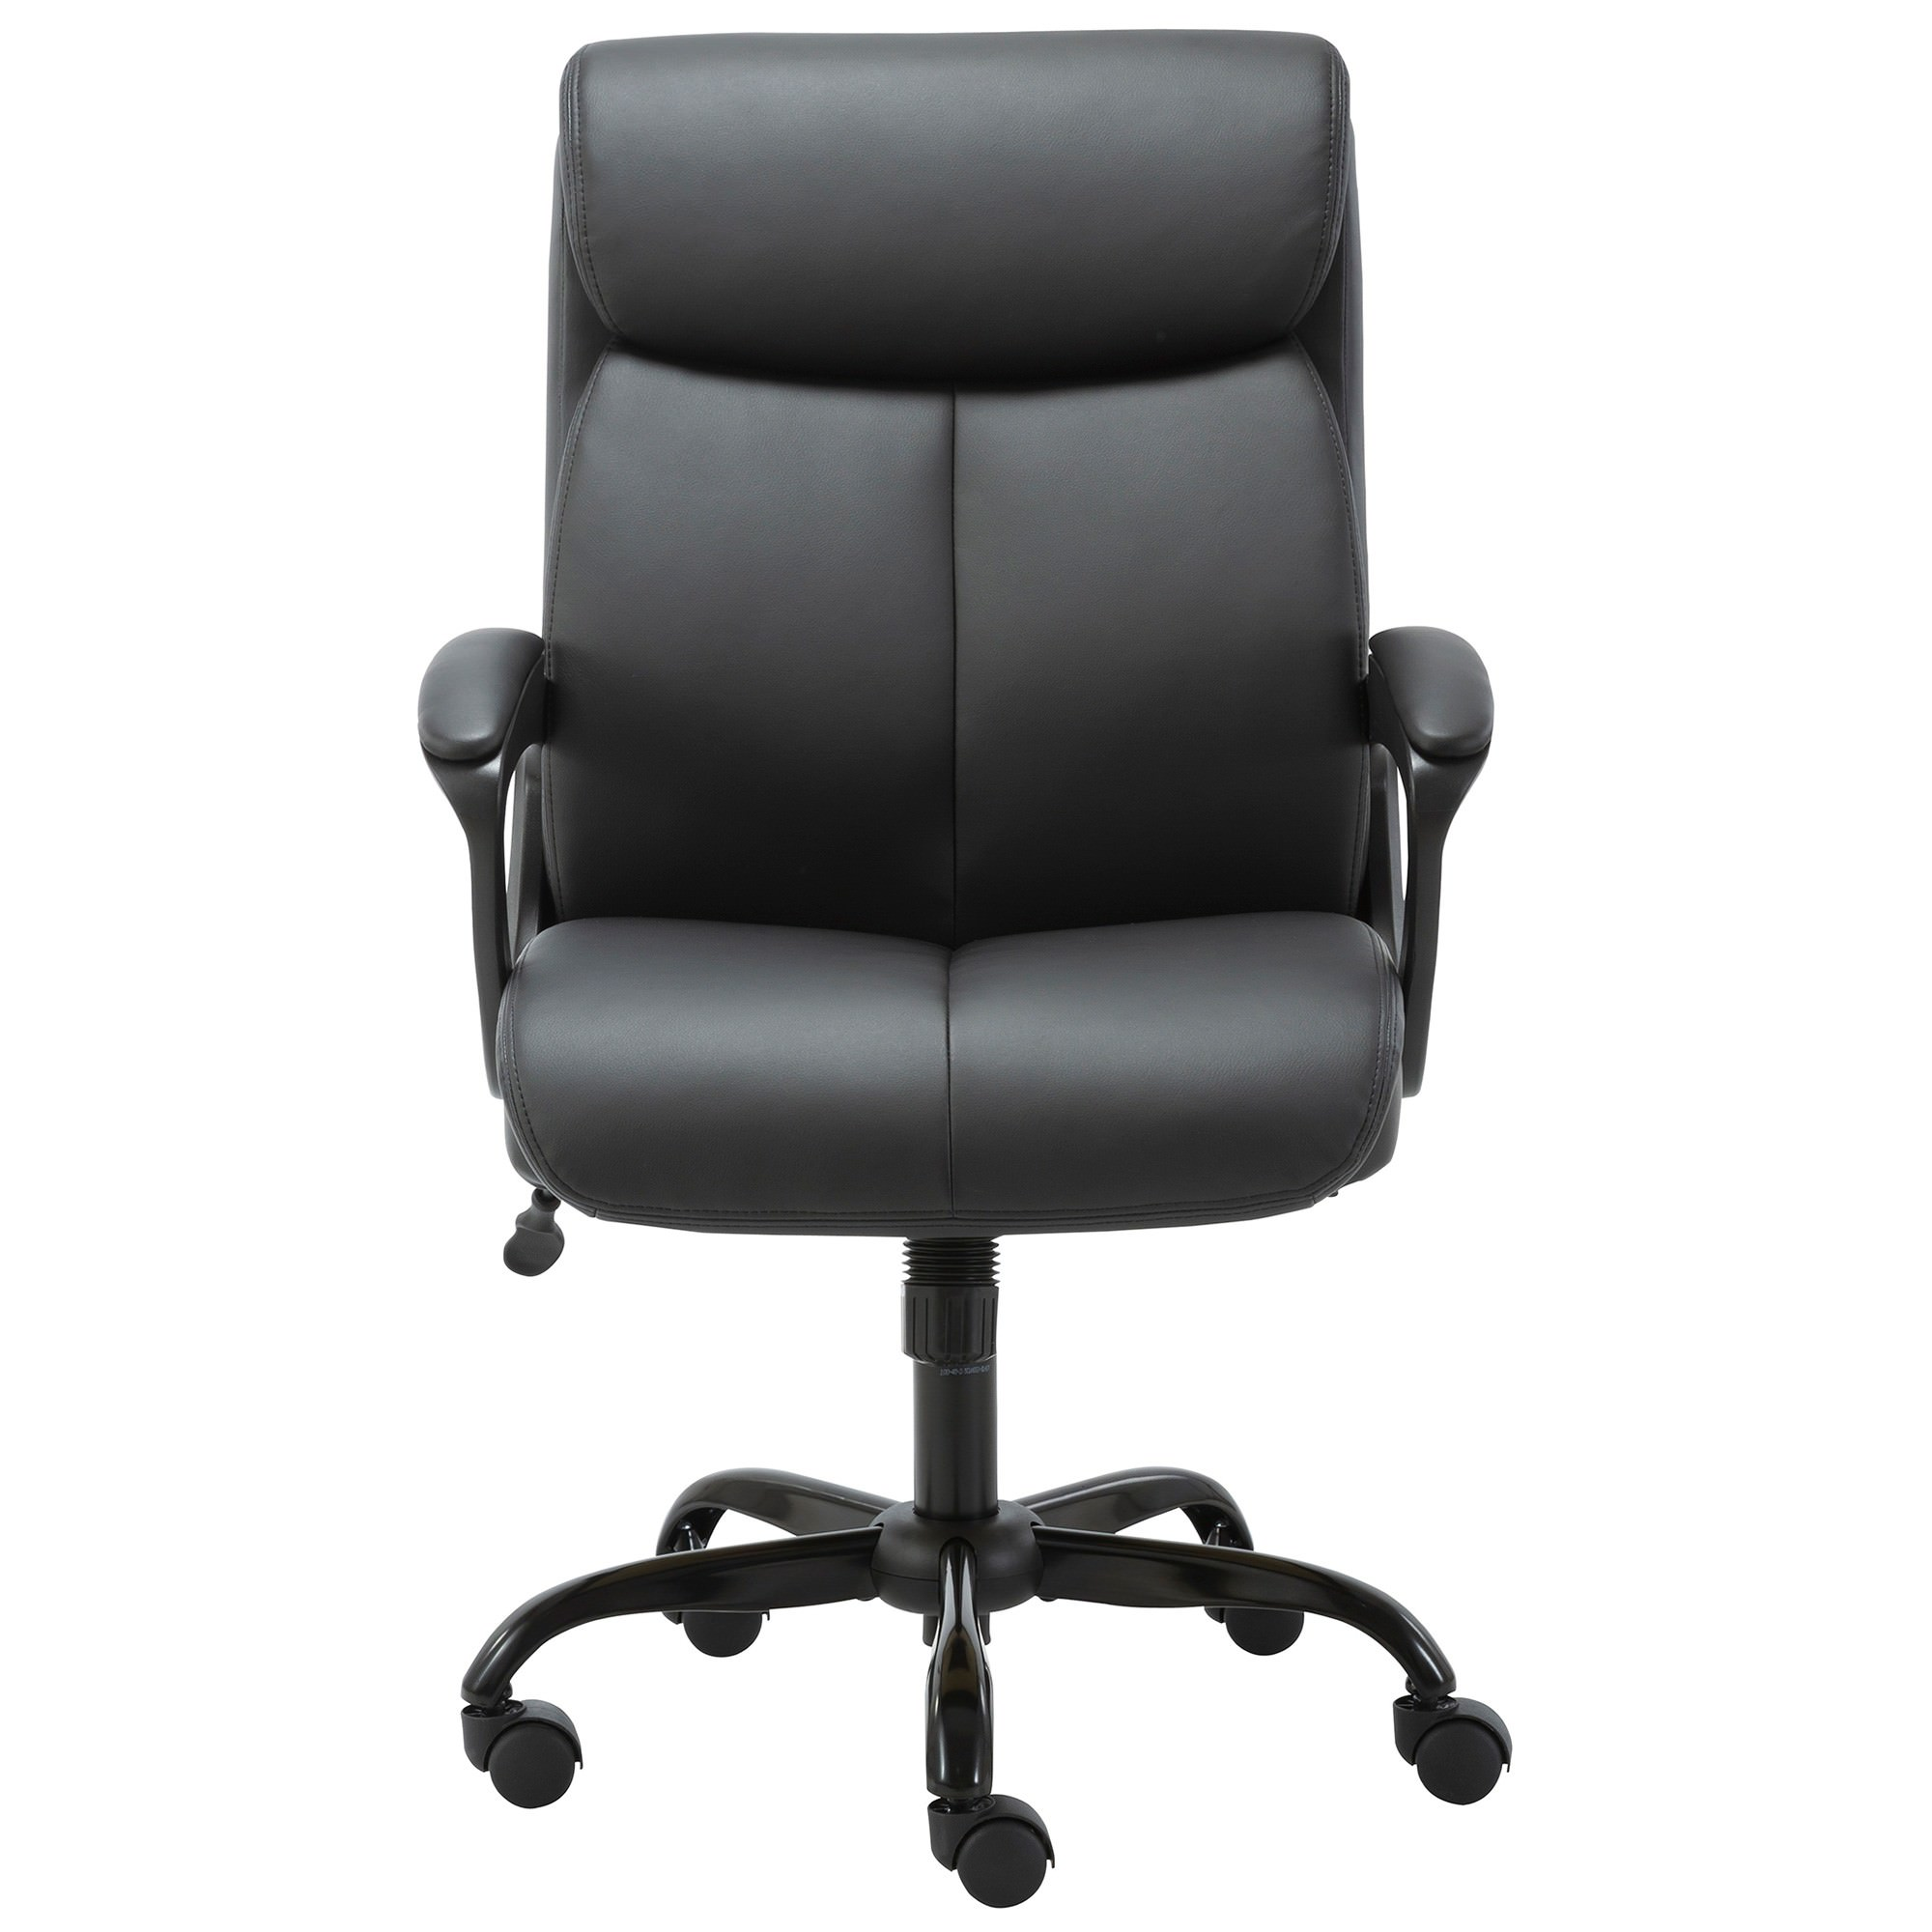 Puresoft PU Leather Office Chair, Mid Back